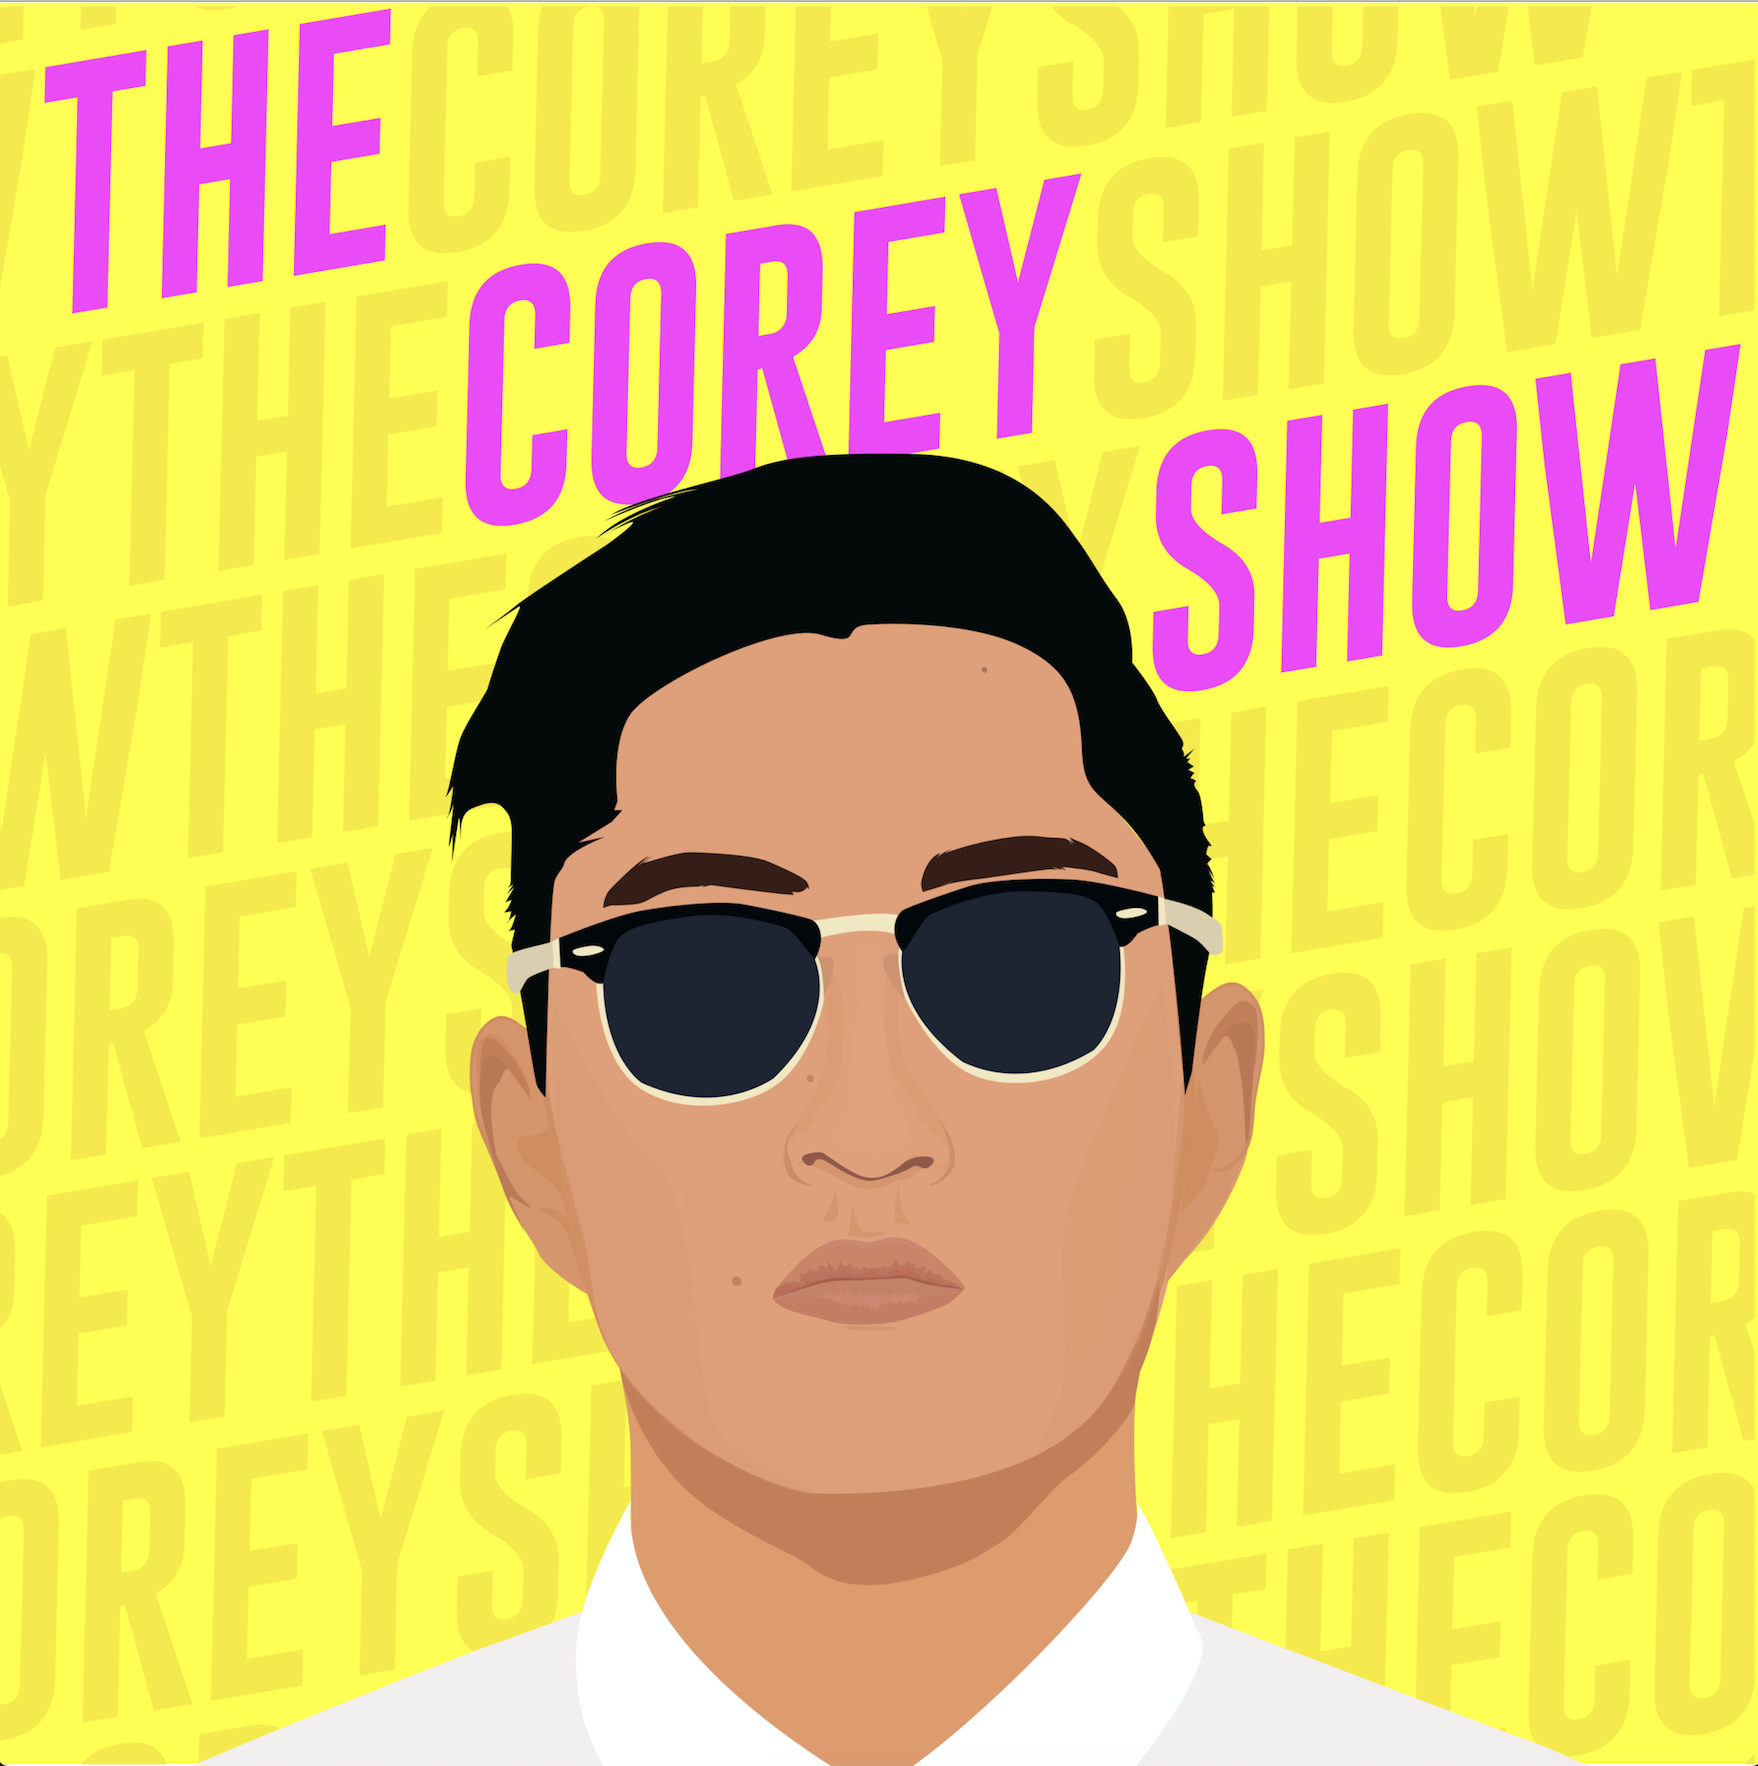 THE COREY SHOW - Welcome To the Corey Show. Join Corey as he brings on a new guest (one of his friends he forced to do it) each week!